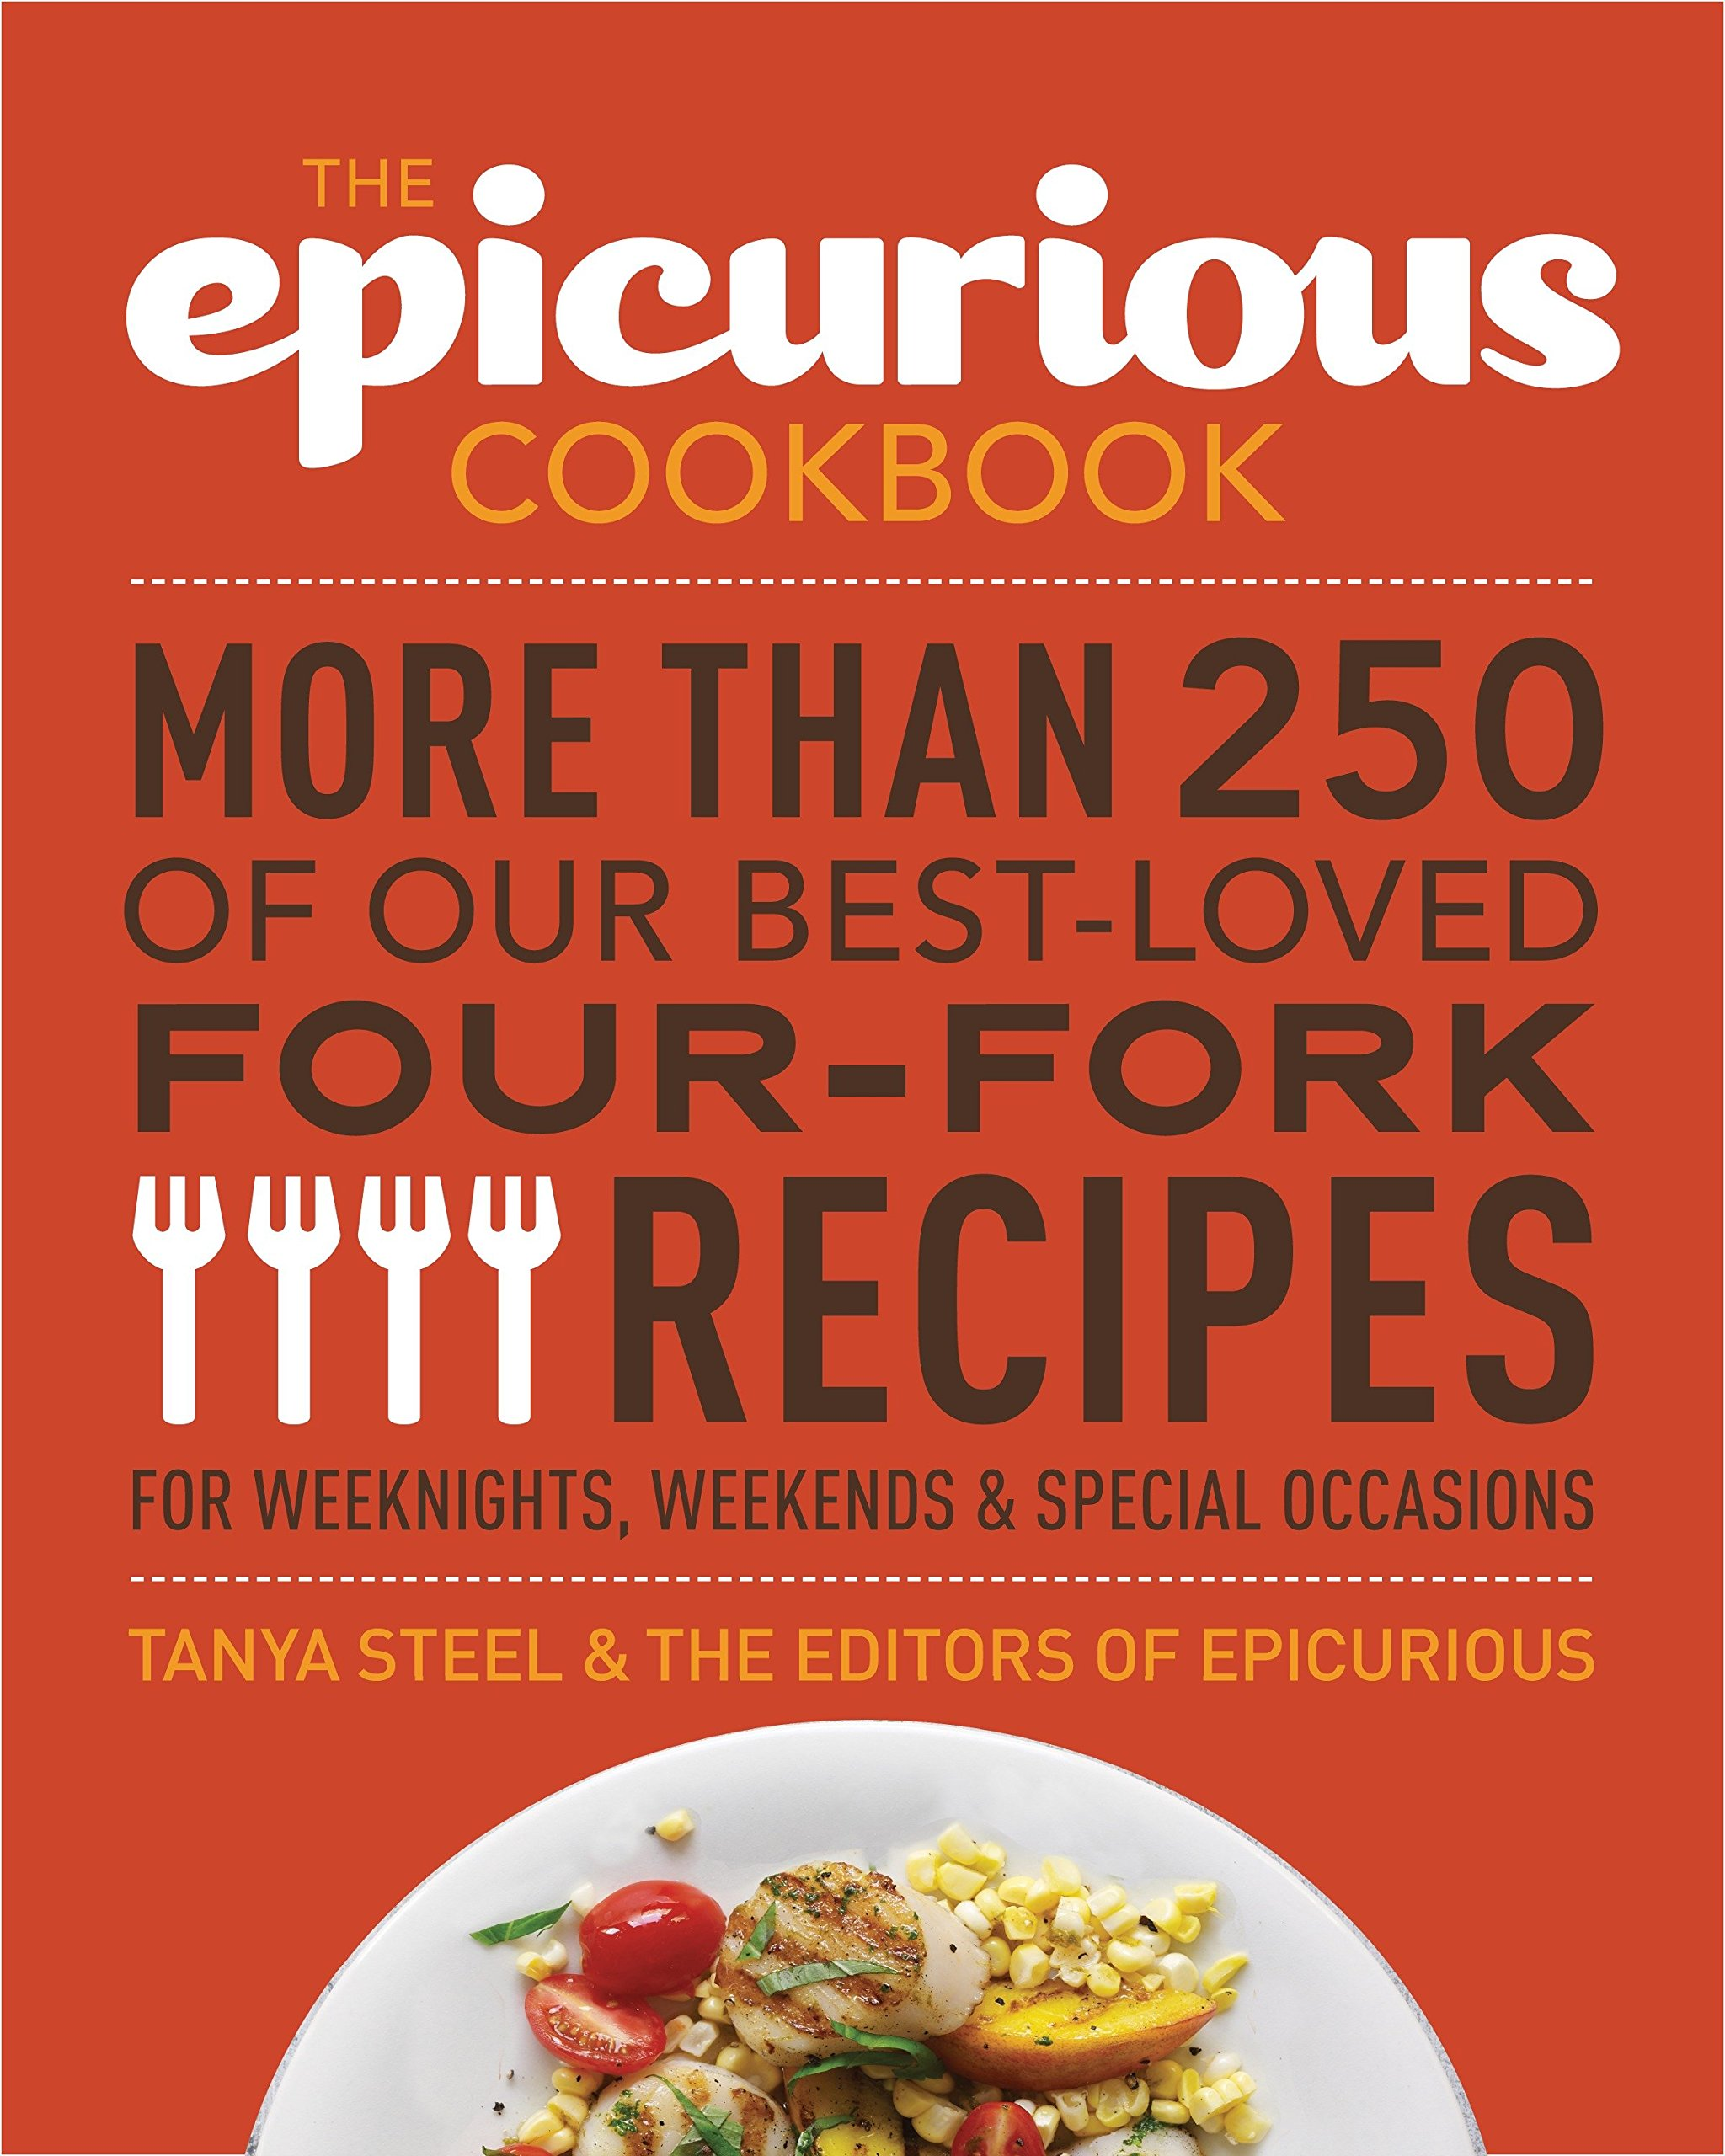 The epicurious cookbook more than 250 of our best loved four fork the epicurious cookbook more than 250 of our best loved four fork recipes for weeknights weekends special occasions tanya steel the editors of forumfinder Gallery